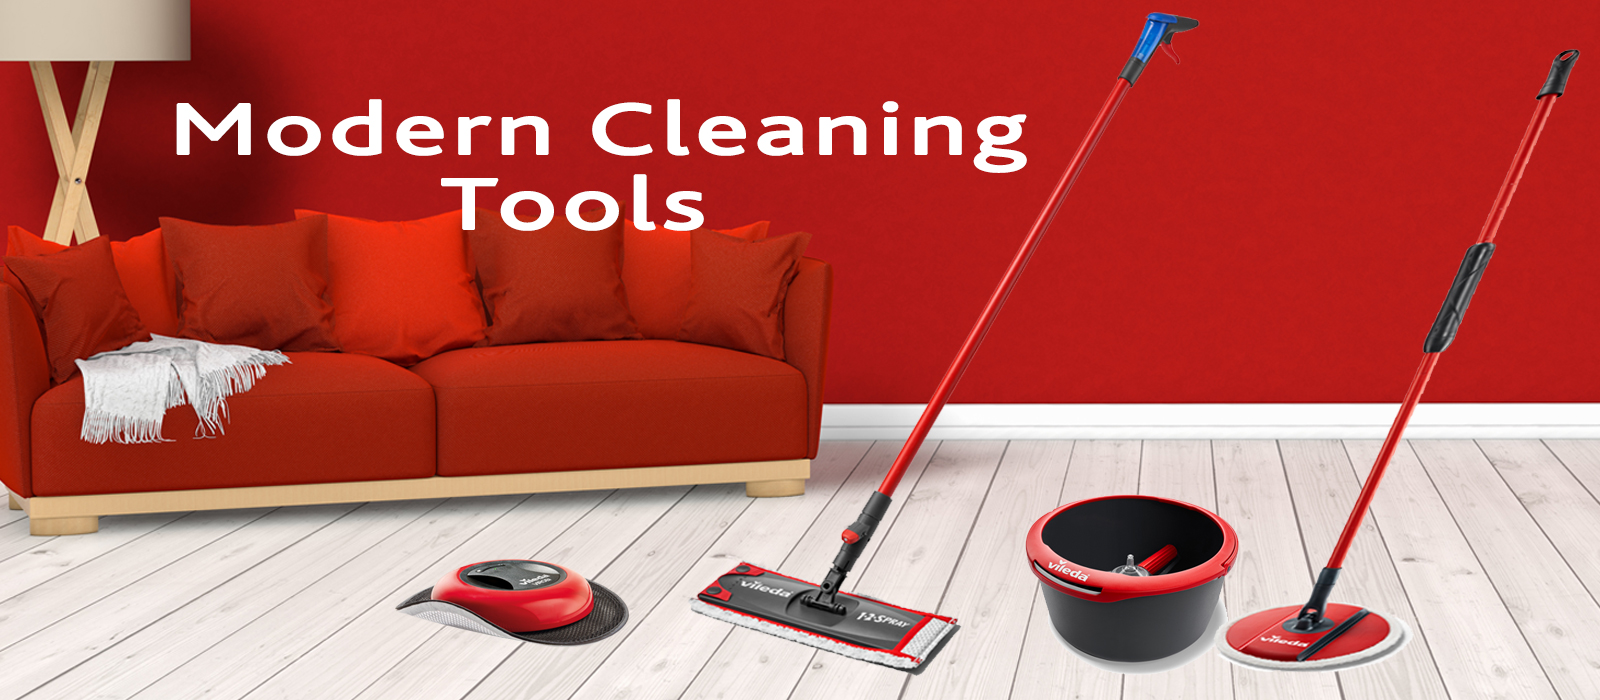 find-your-modern-cleaning-tools-here.jpg position: relative